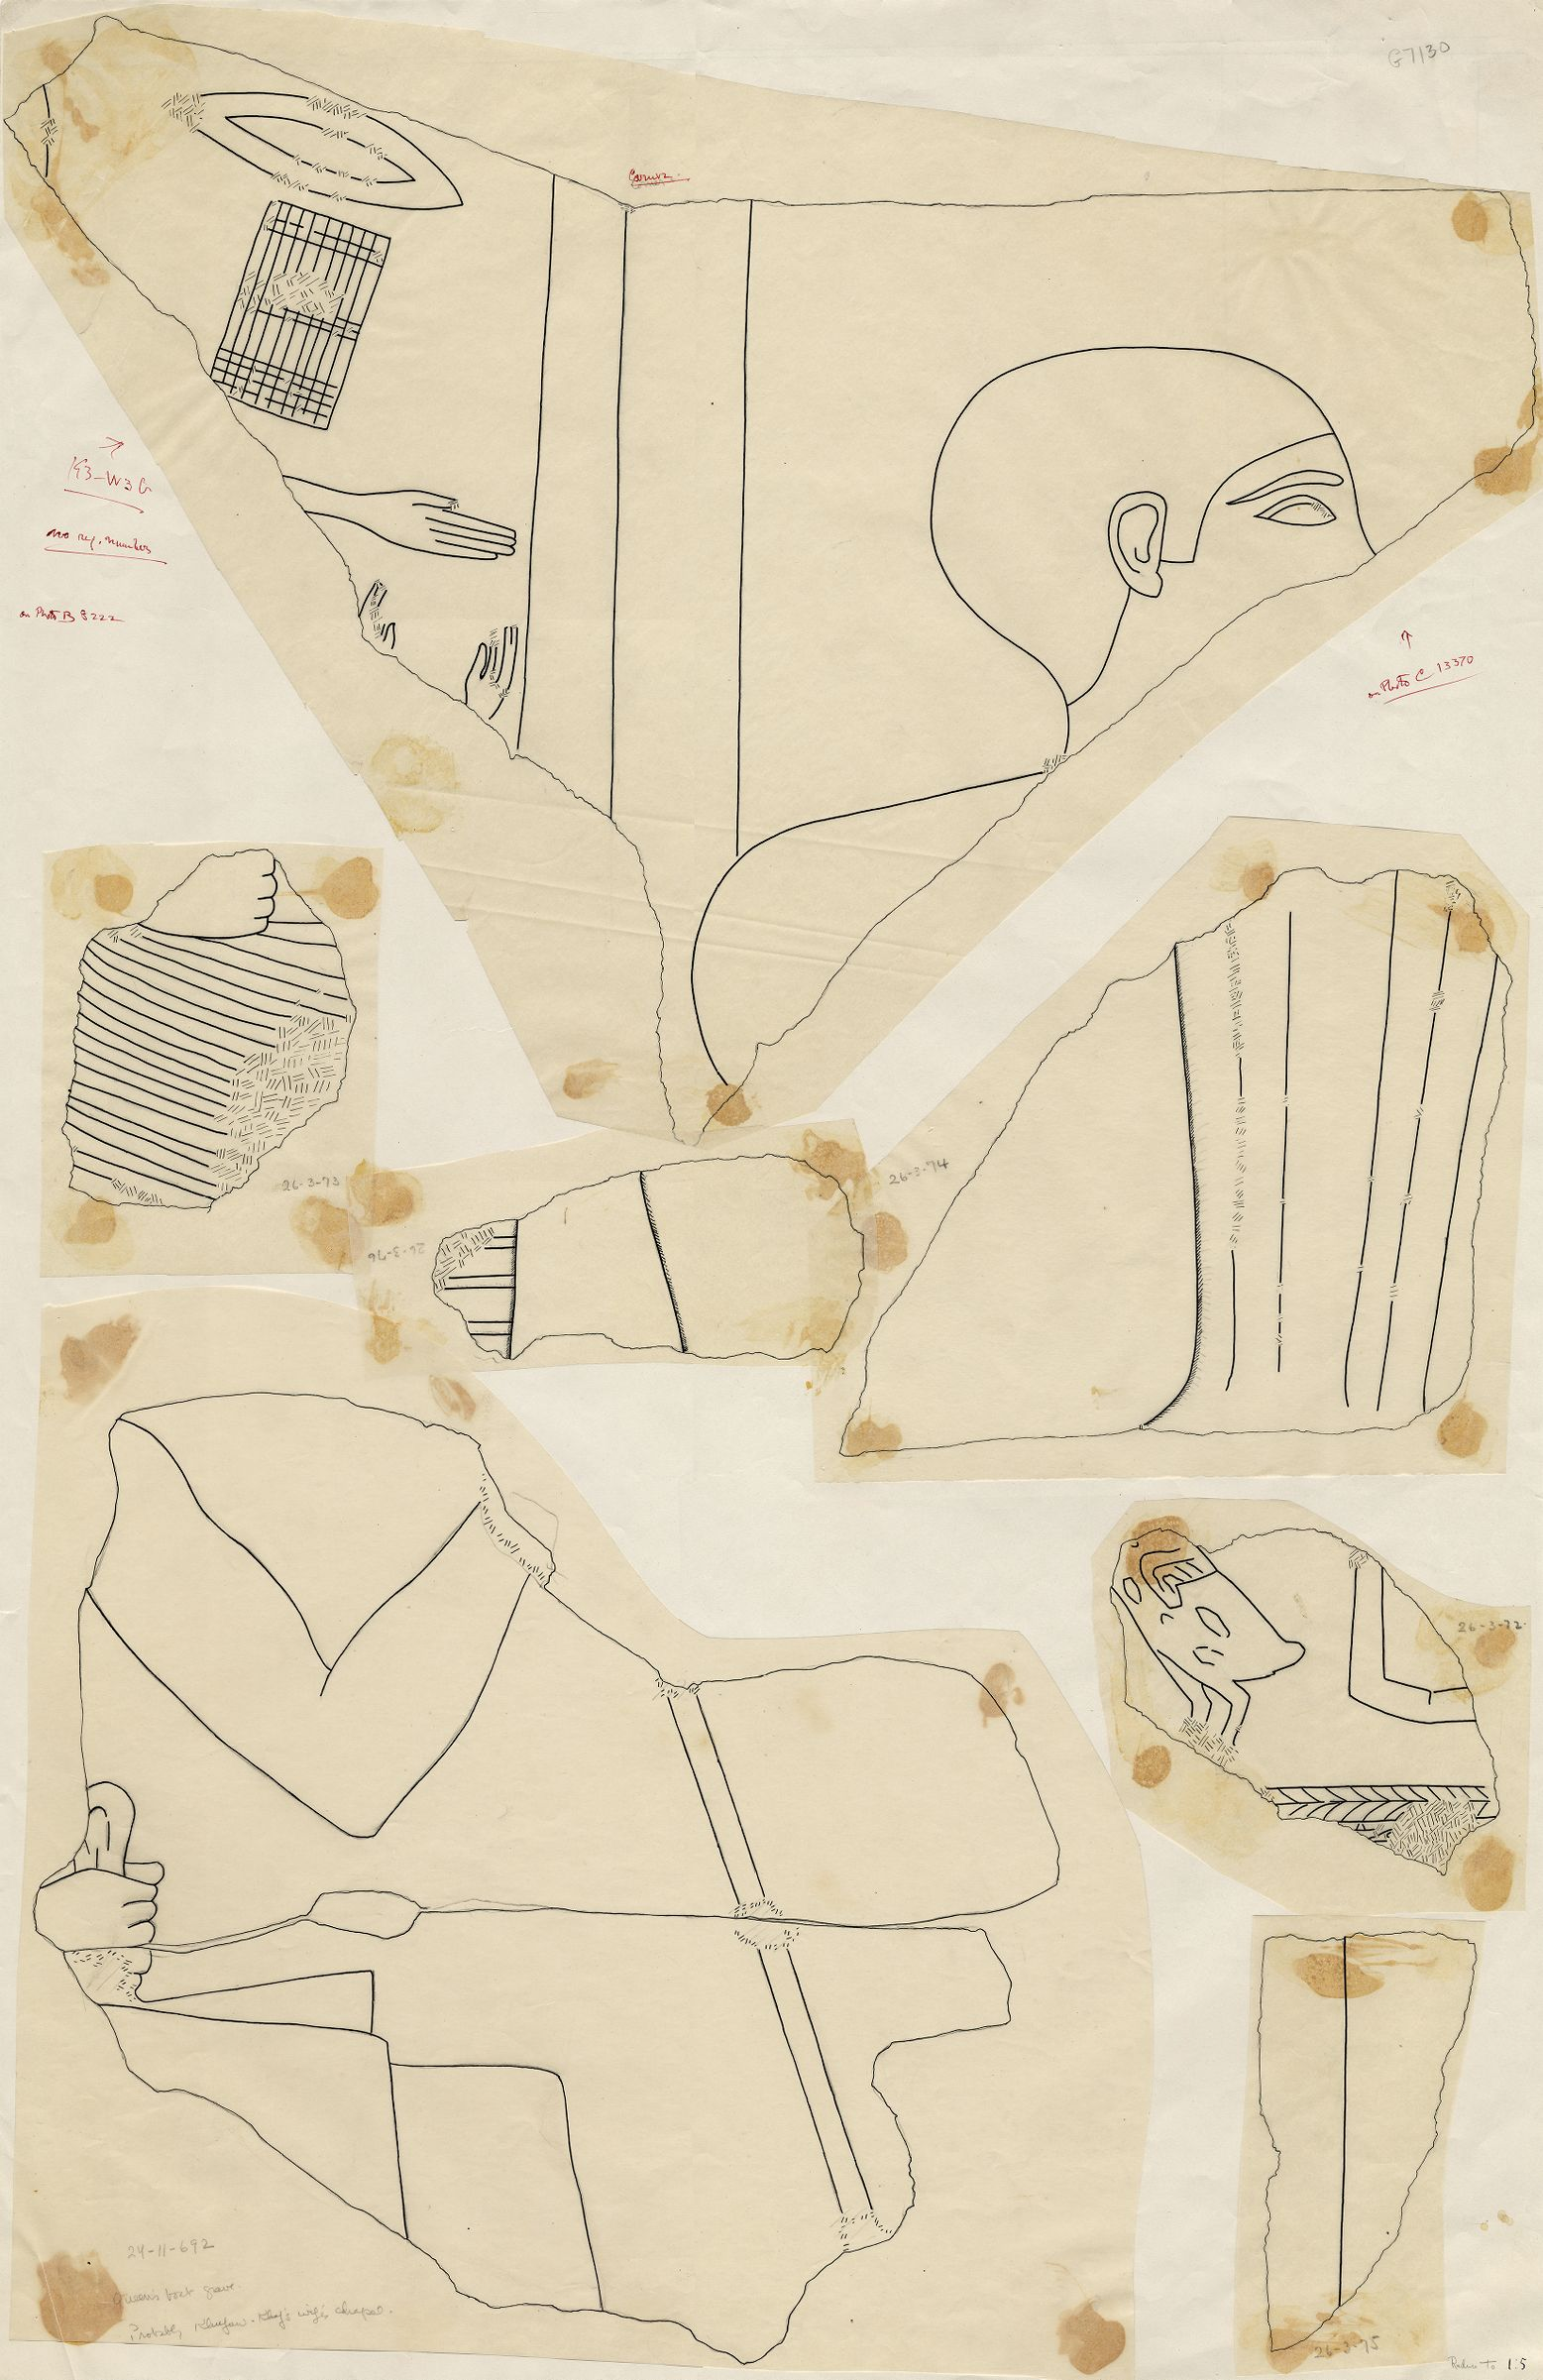 Drawings: G 7130-7140: G 7130: fragments of relief